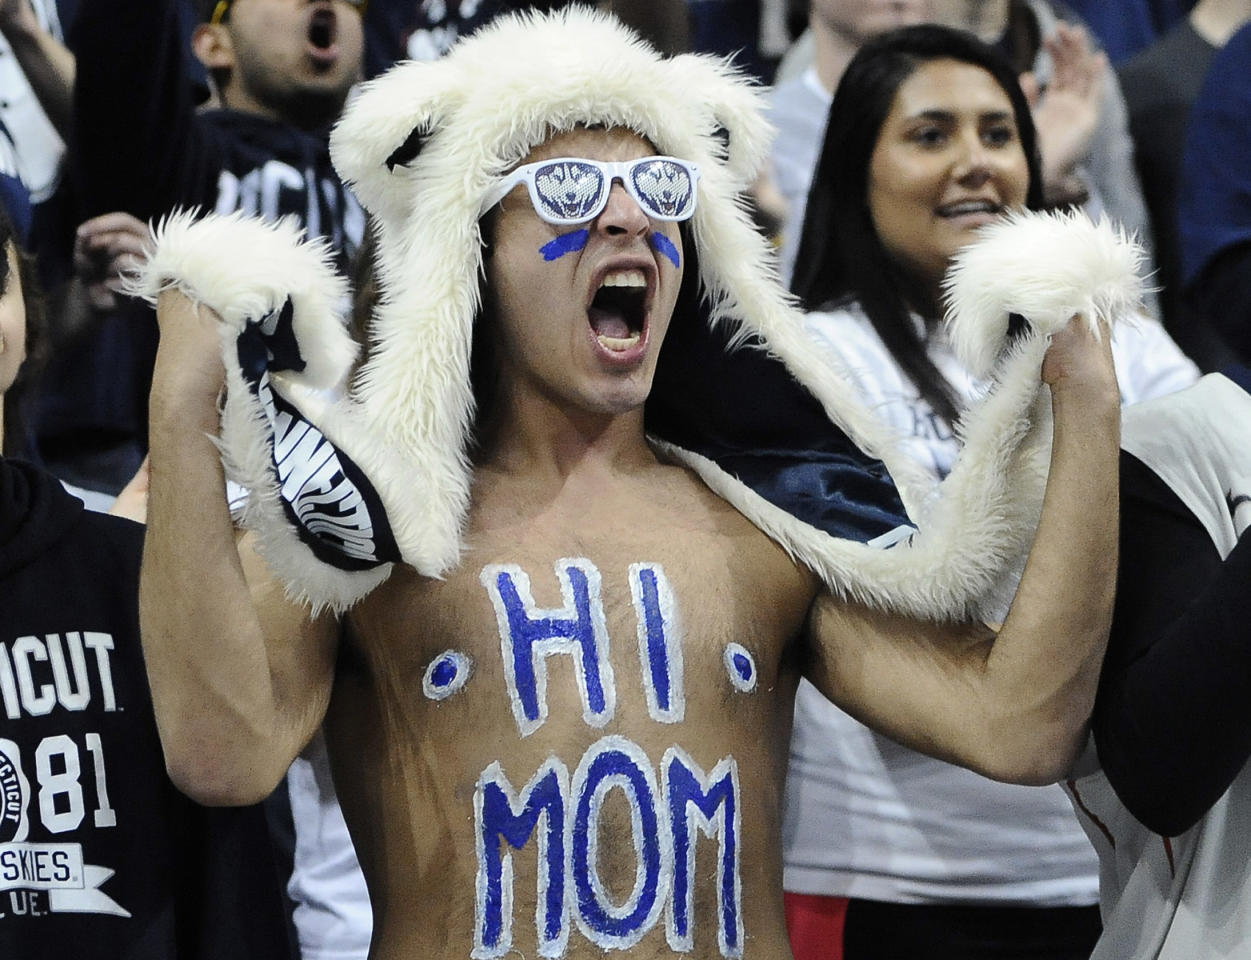 A Connecticut student cheers inside Gampel Pavilion in Storrs., Conn., Monday April 7, 2014, as they watch the broadcast of the UConn men's basketball team attempt to win a fourth NCAA title and a second in the last four years against Kentucky. (AP Photo/Jessica Hill)